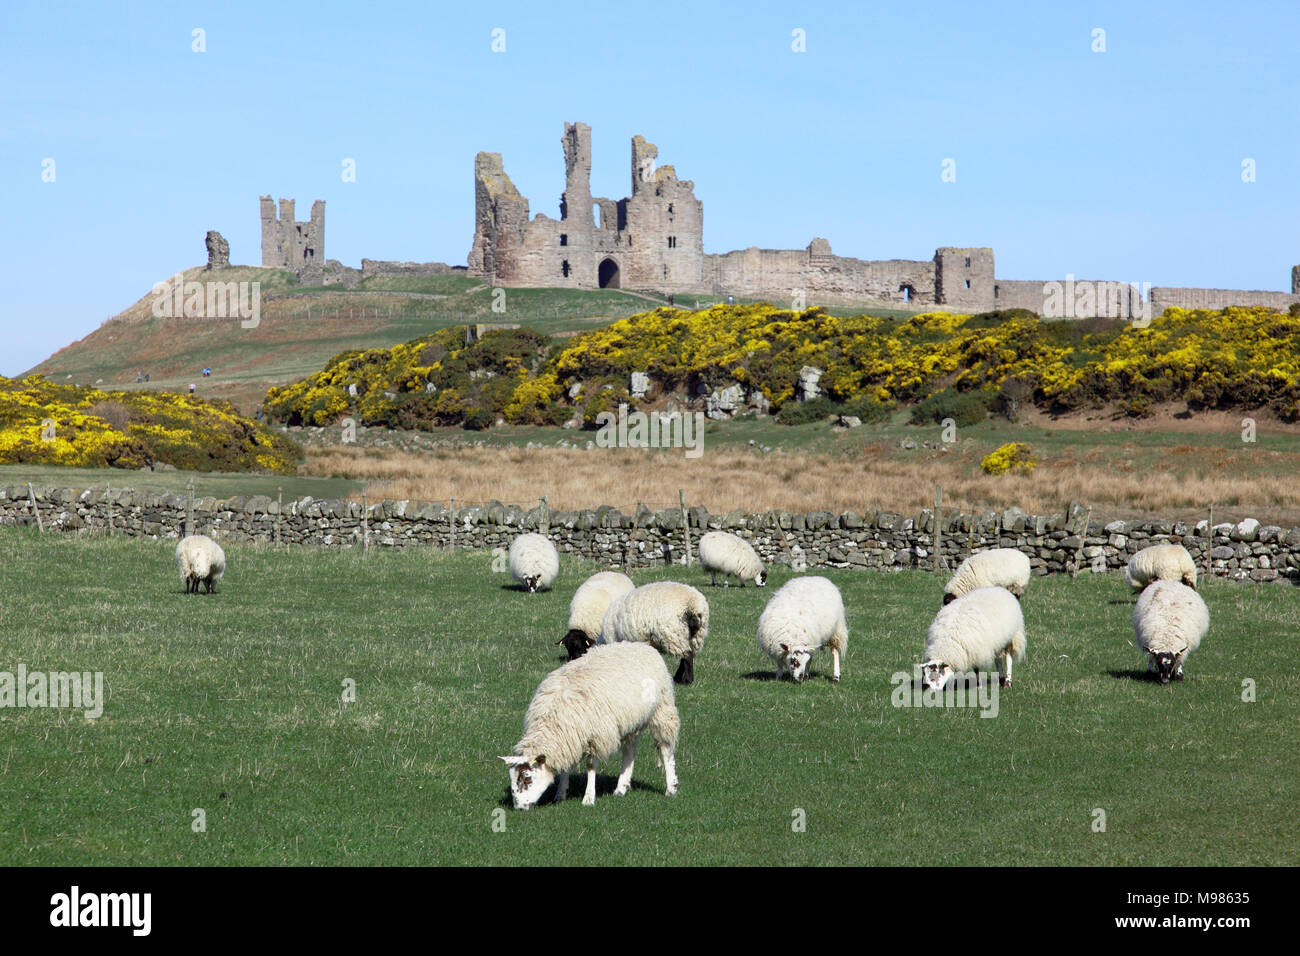 Sheep grazing in front of the ruin of Dunstanburgh Castle, Northumberland, on the north east coast of England - Stock Image